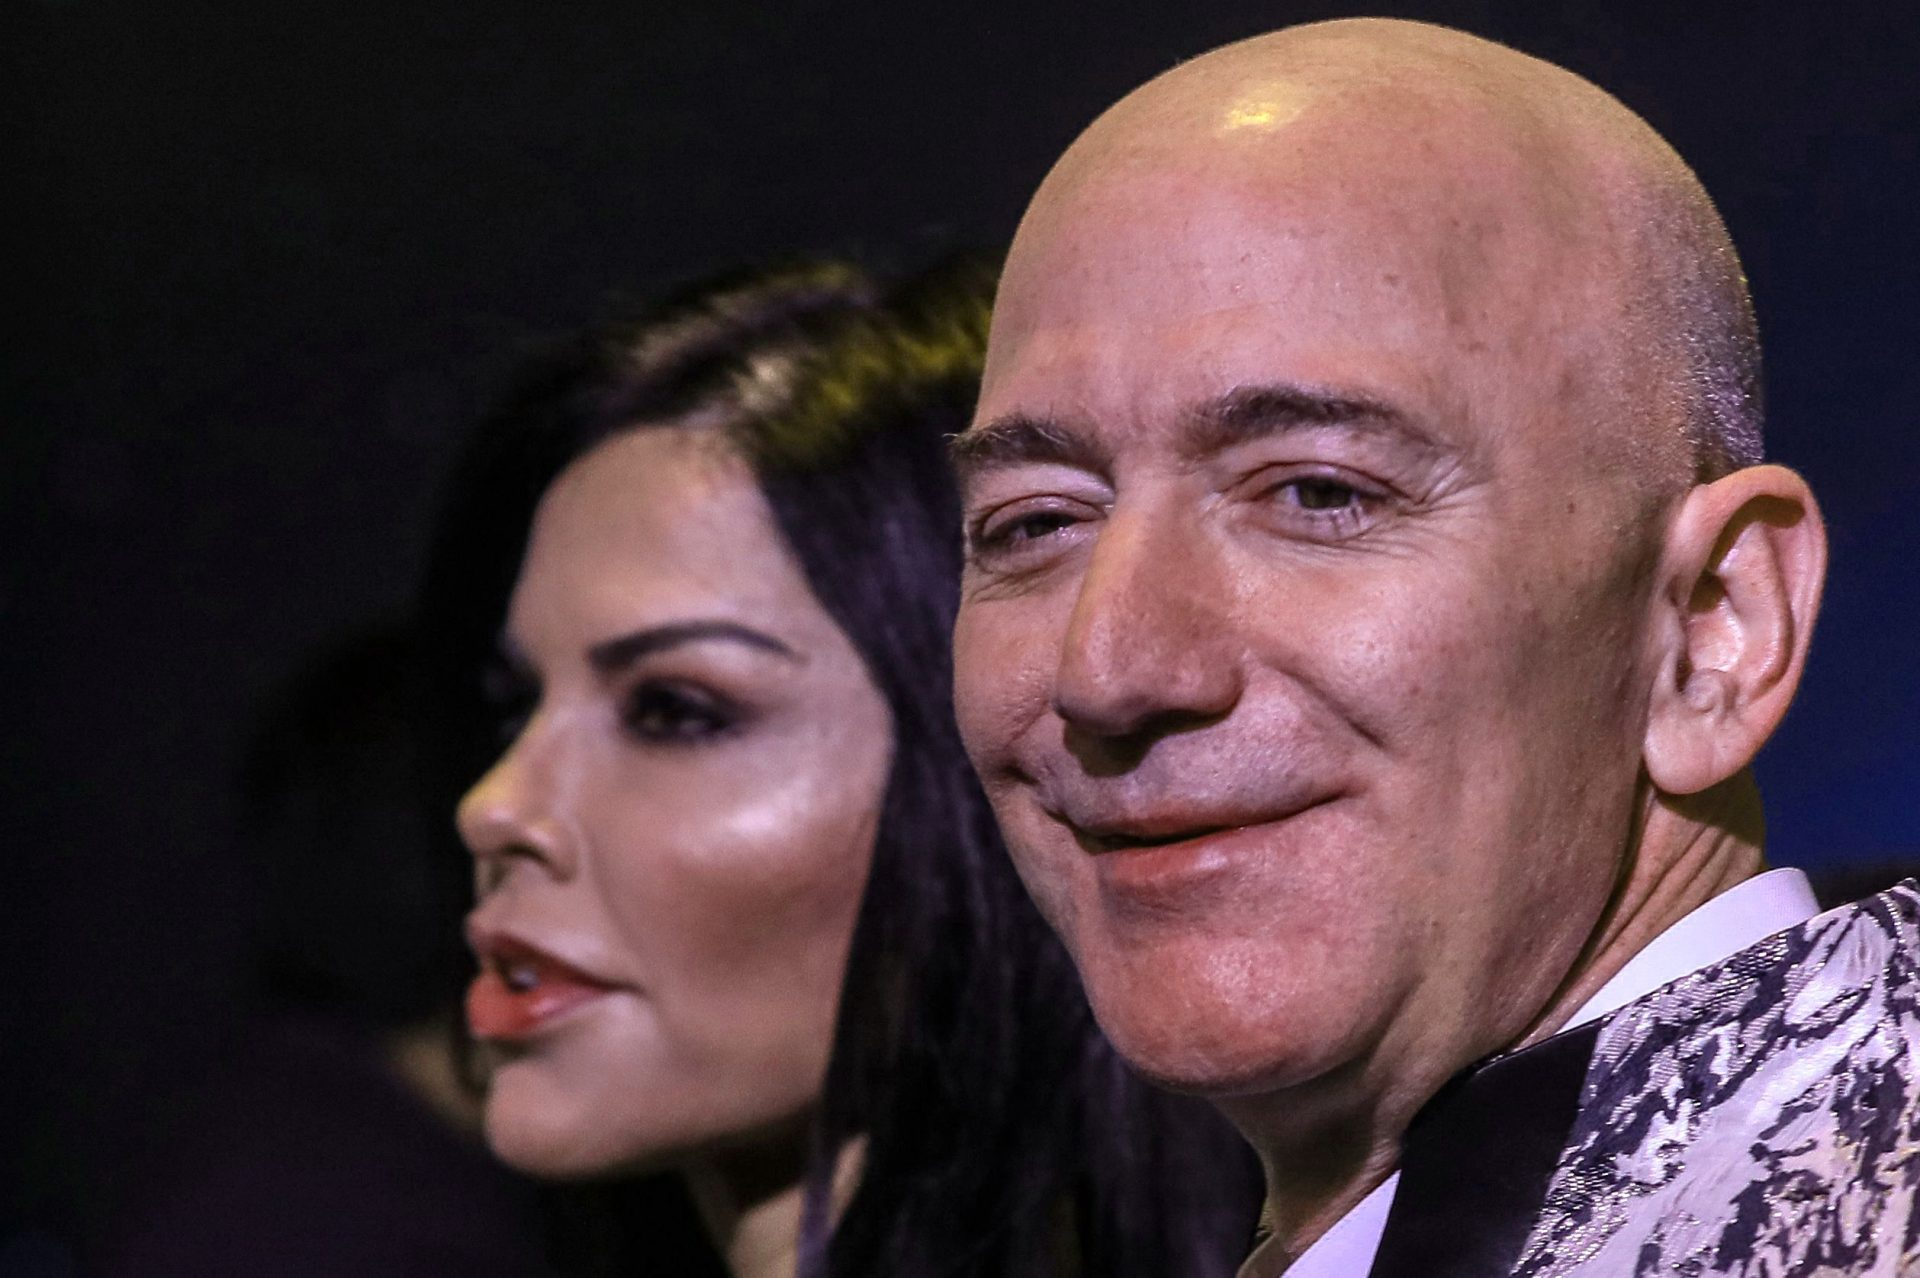 Mandatory Credit: Photo by DIVYAKANT SOLANKI/EPA-EFE/Shutterstock (10528180a)Amazon Founder and CEO Jeff Bezos (R) and his partner, US new anchor Lauren Sanchez (L), poses for photographs during an event in Mumbai, India, 16 January 2020.